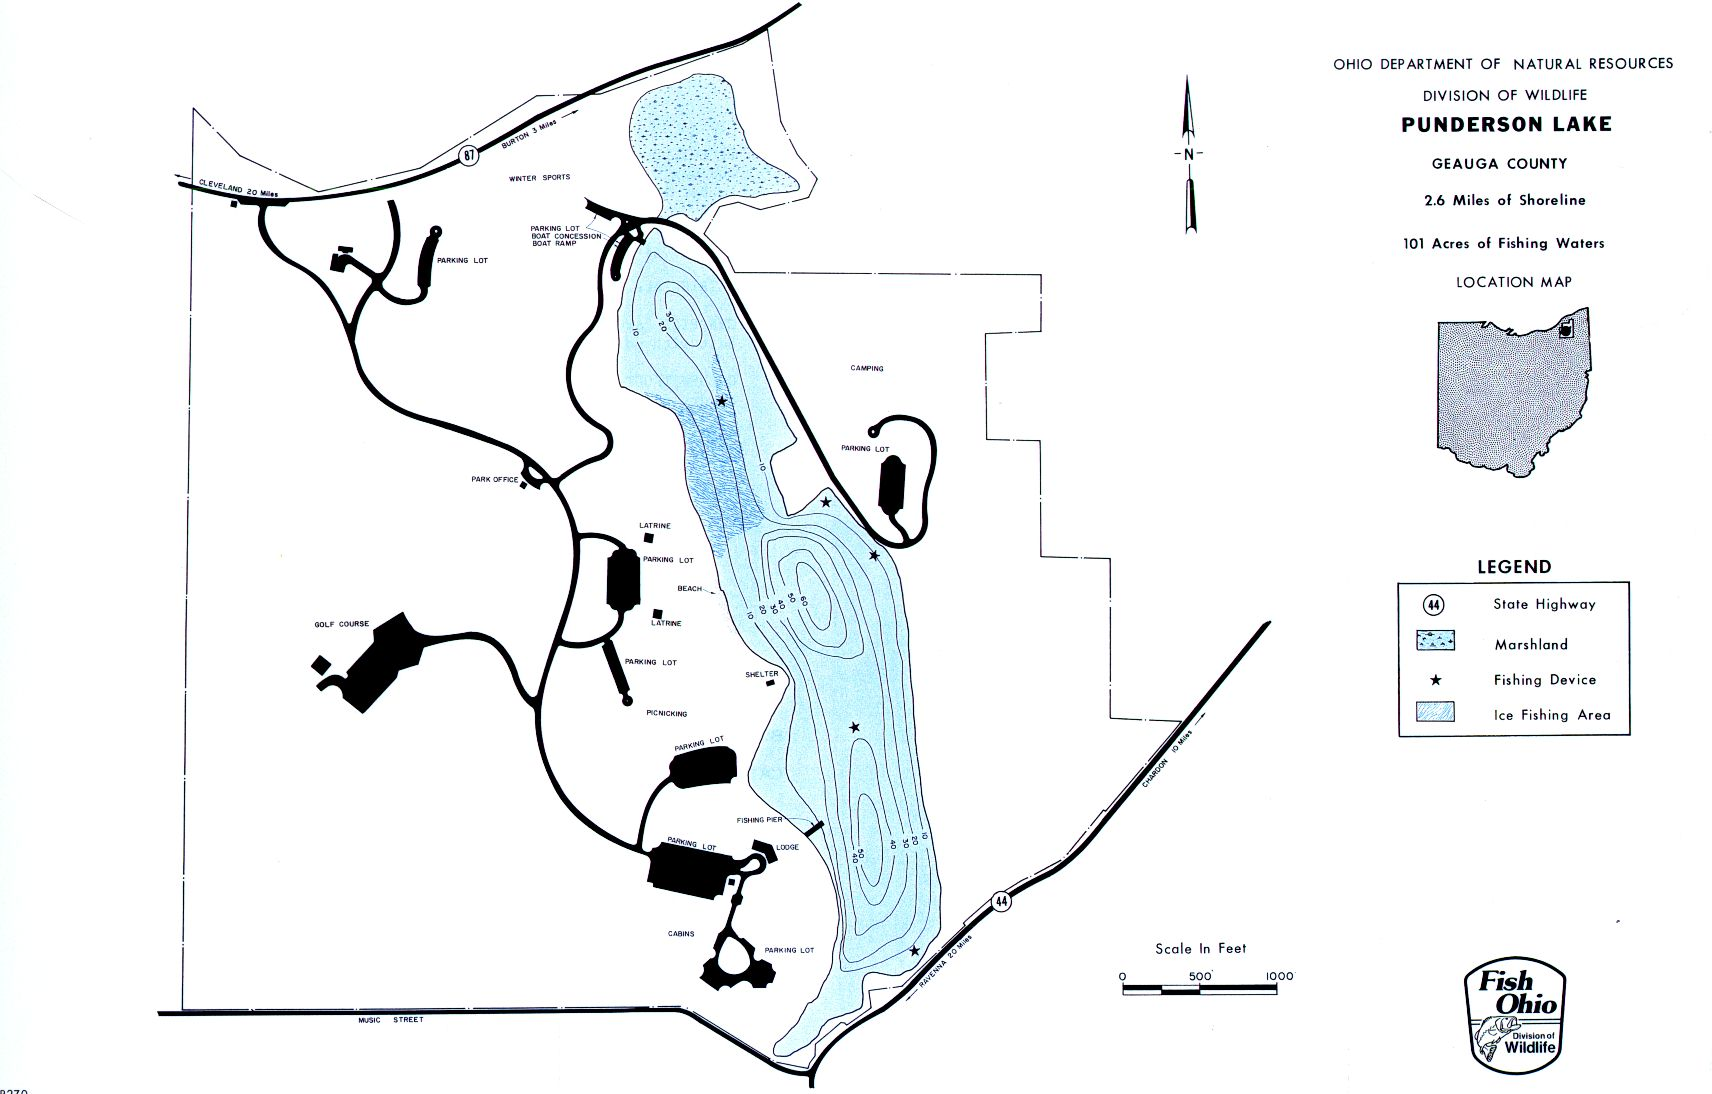 Punderson Lake Fishing Map - GoFishOhio